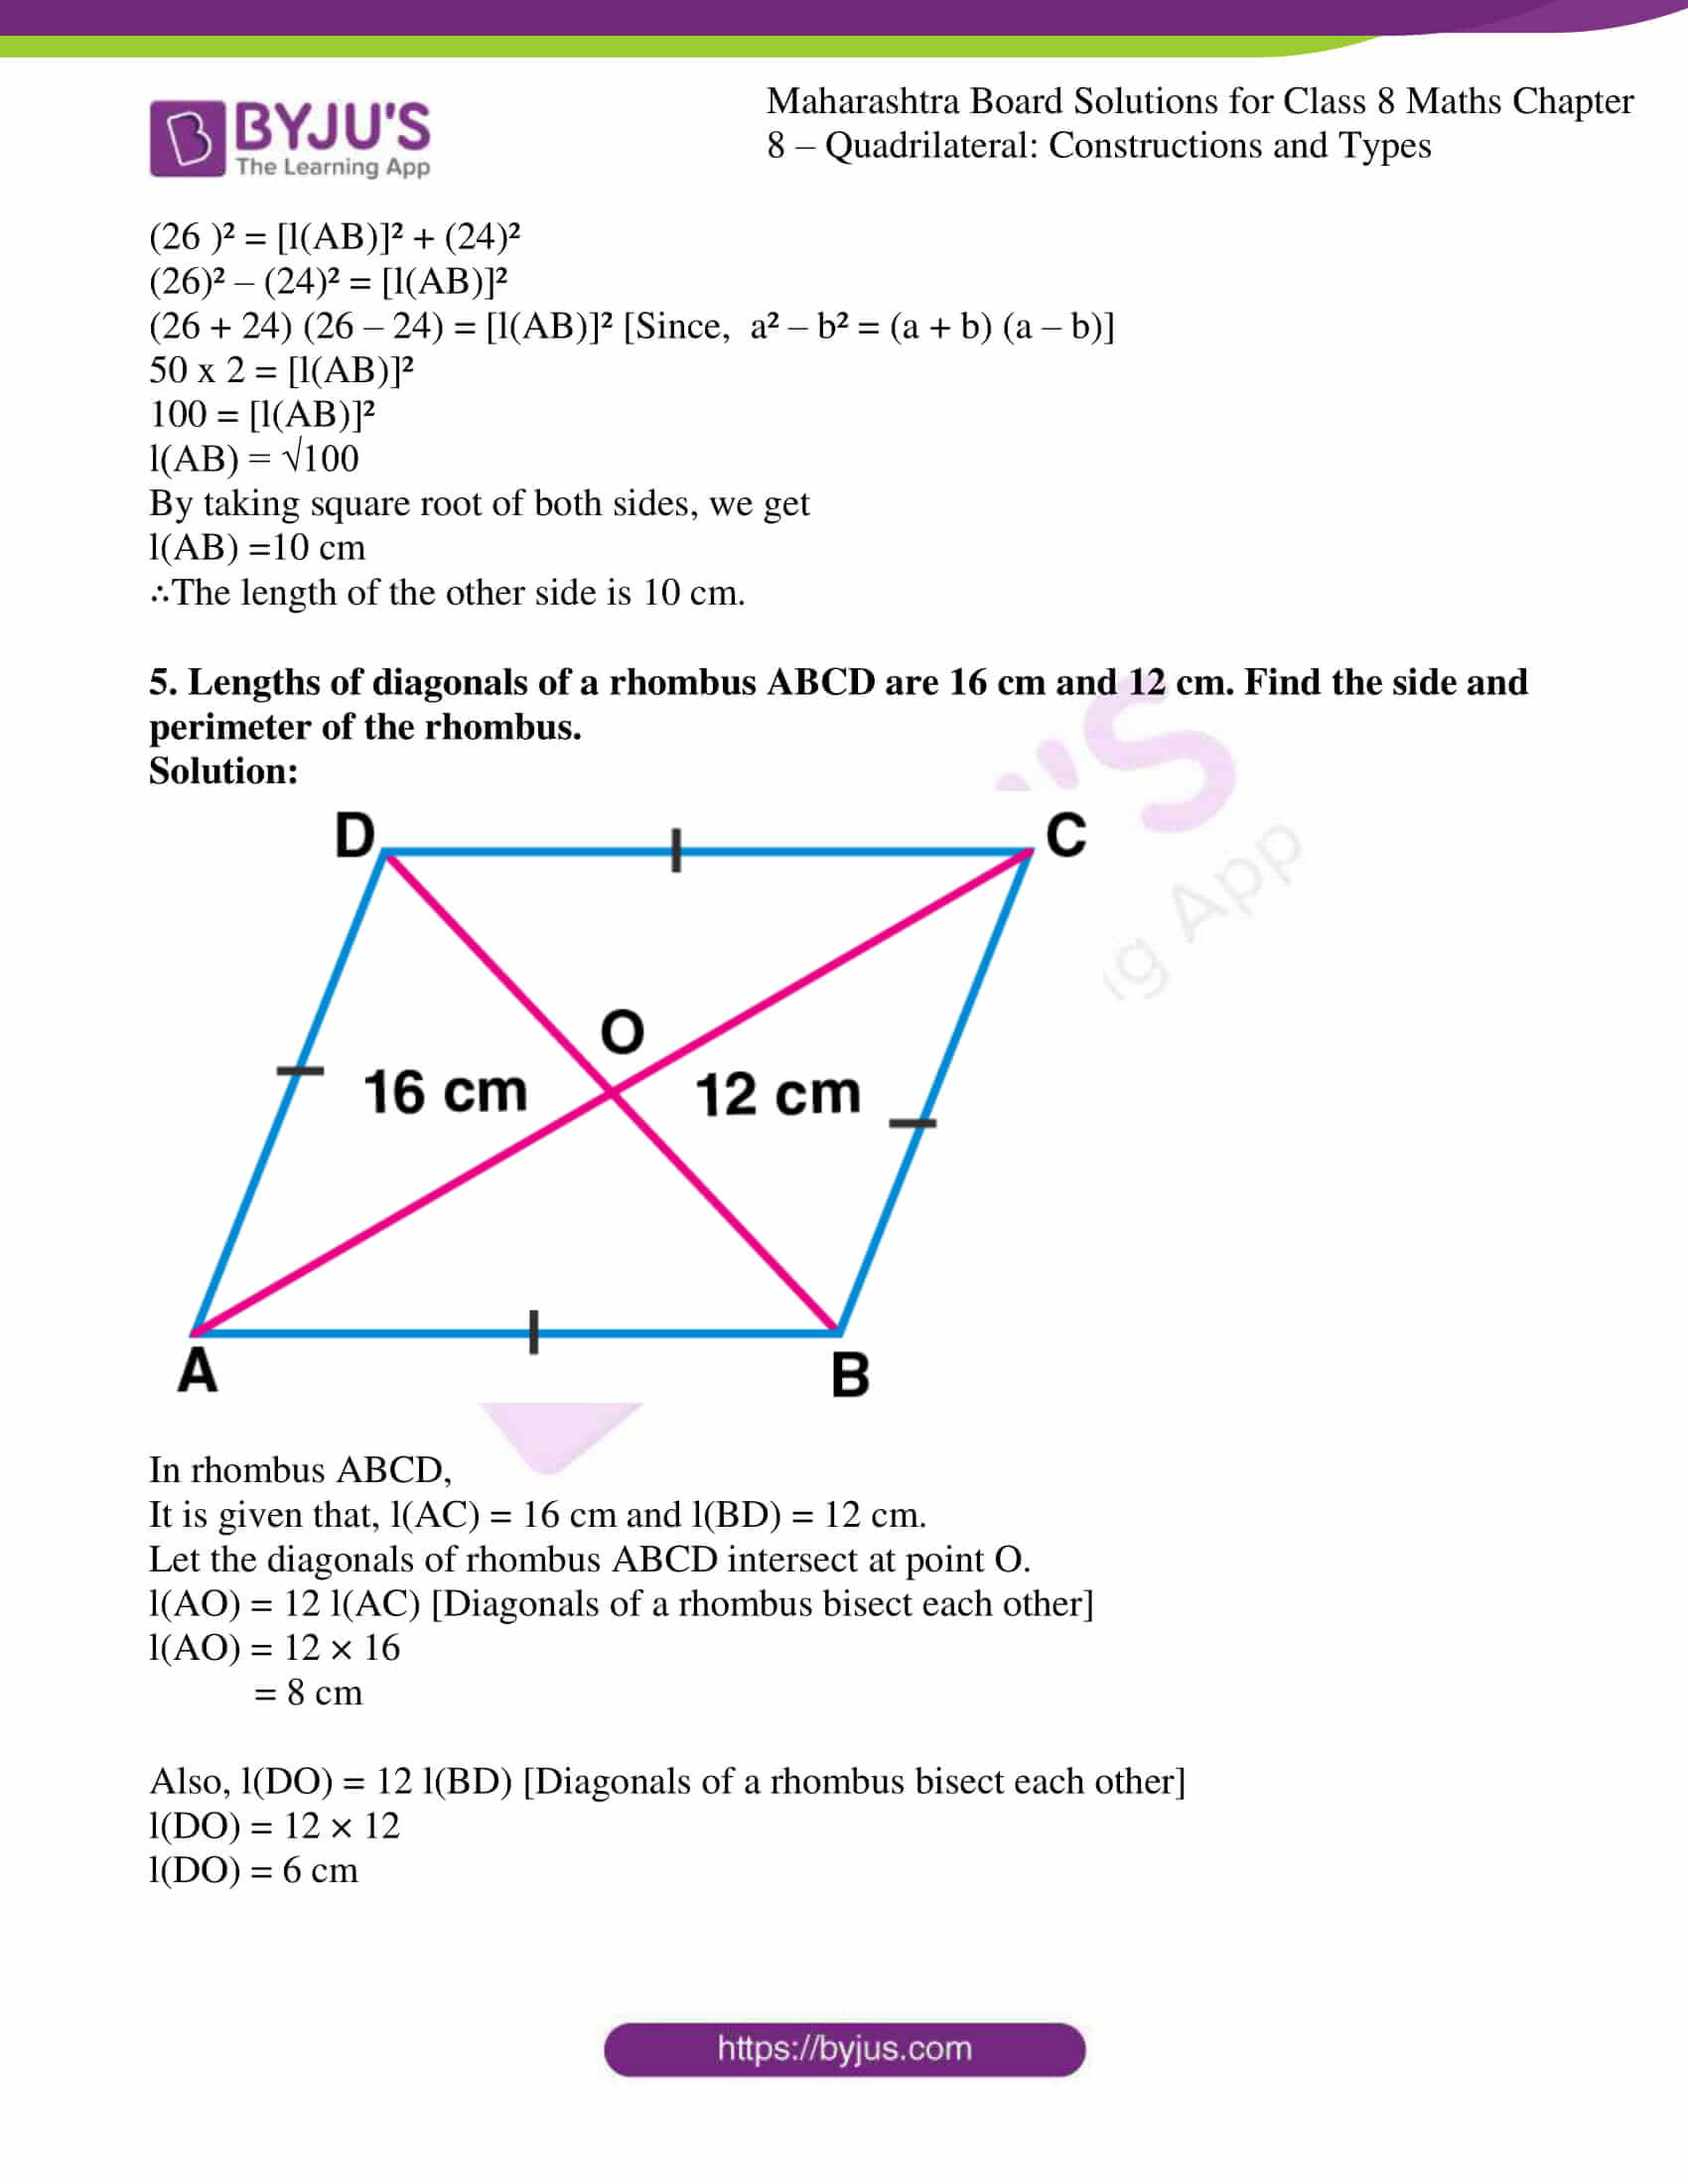 msbshse sol for class 8 maths chapter 8 09